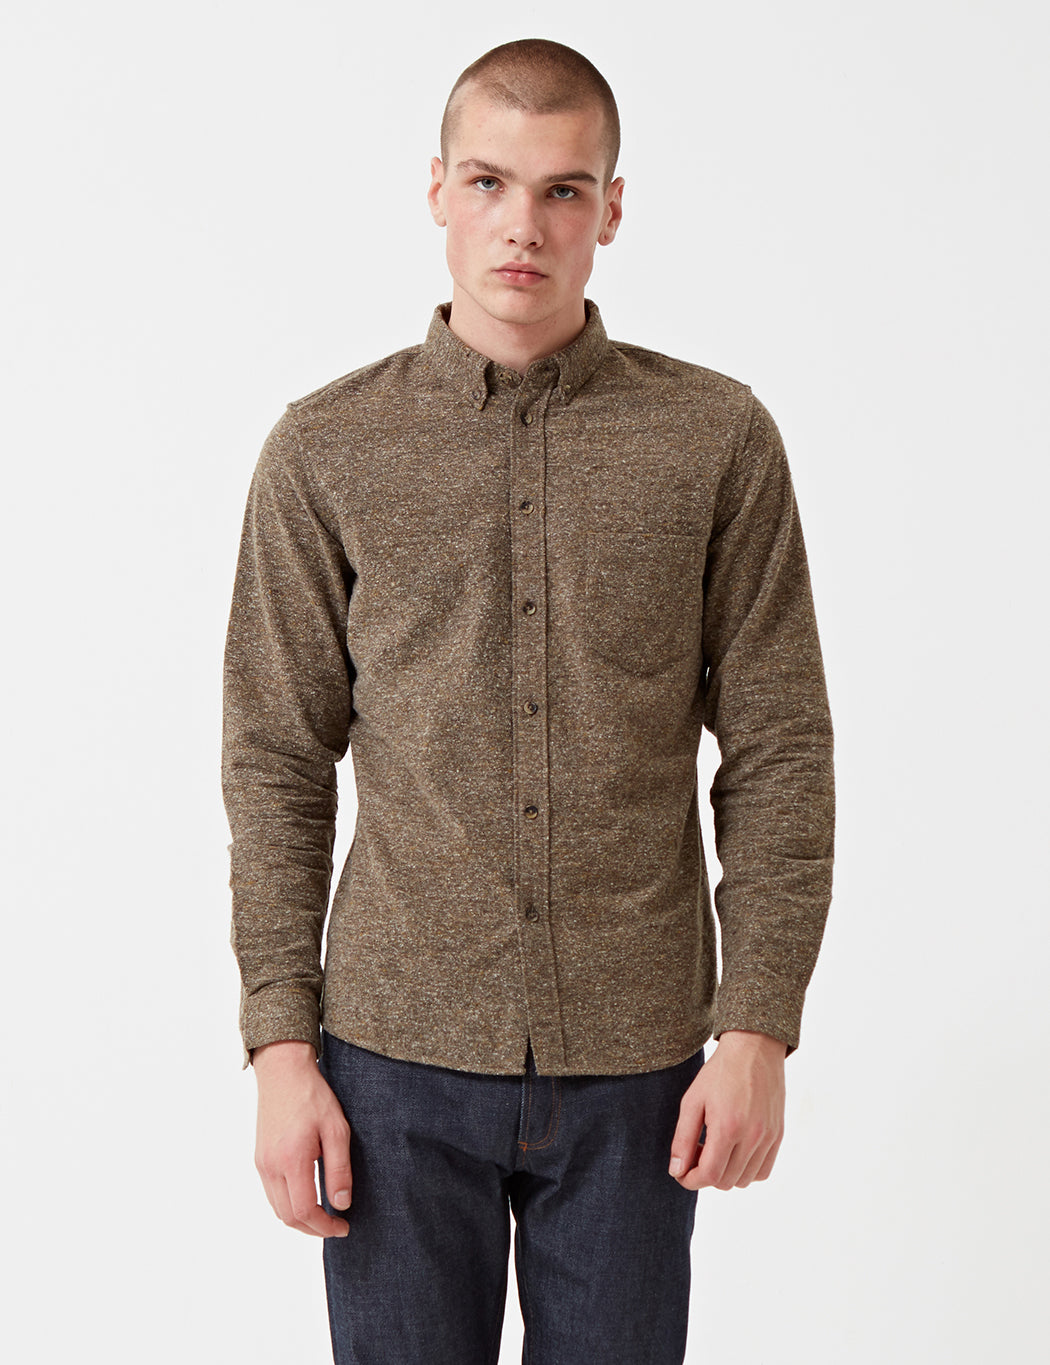 Levis Made & Crafted Standard Shirt - Brown Donegal